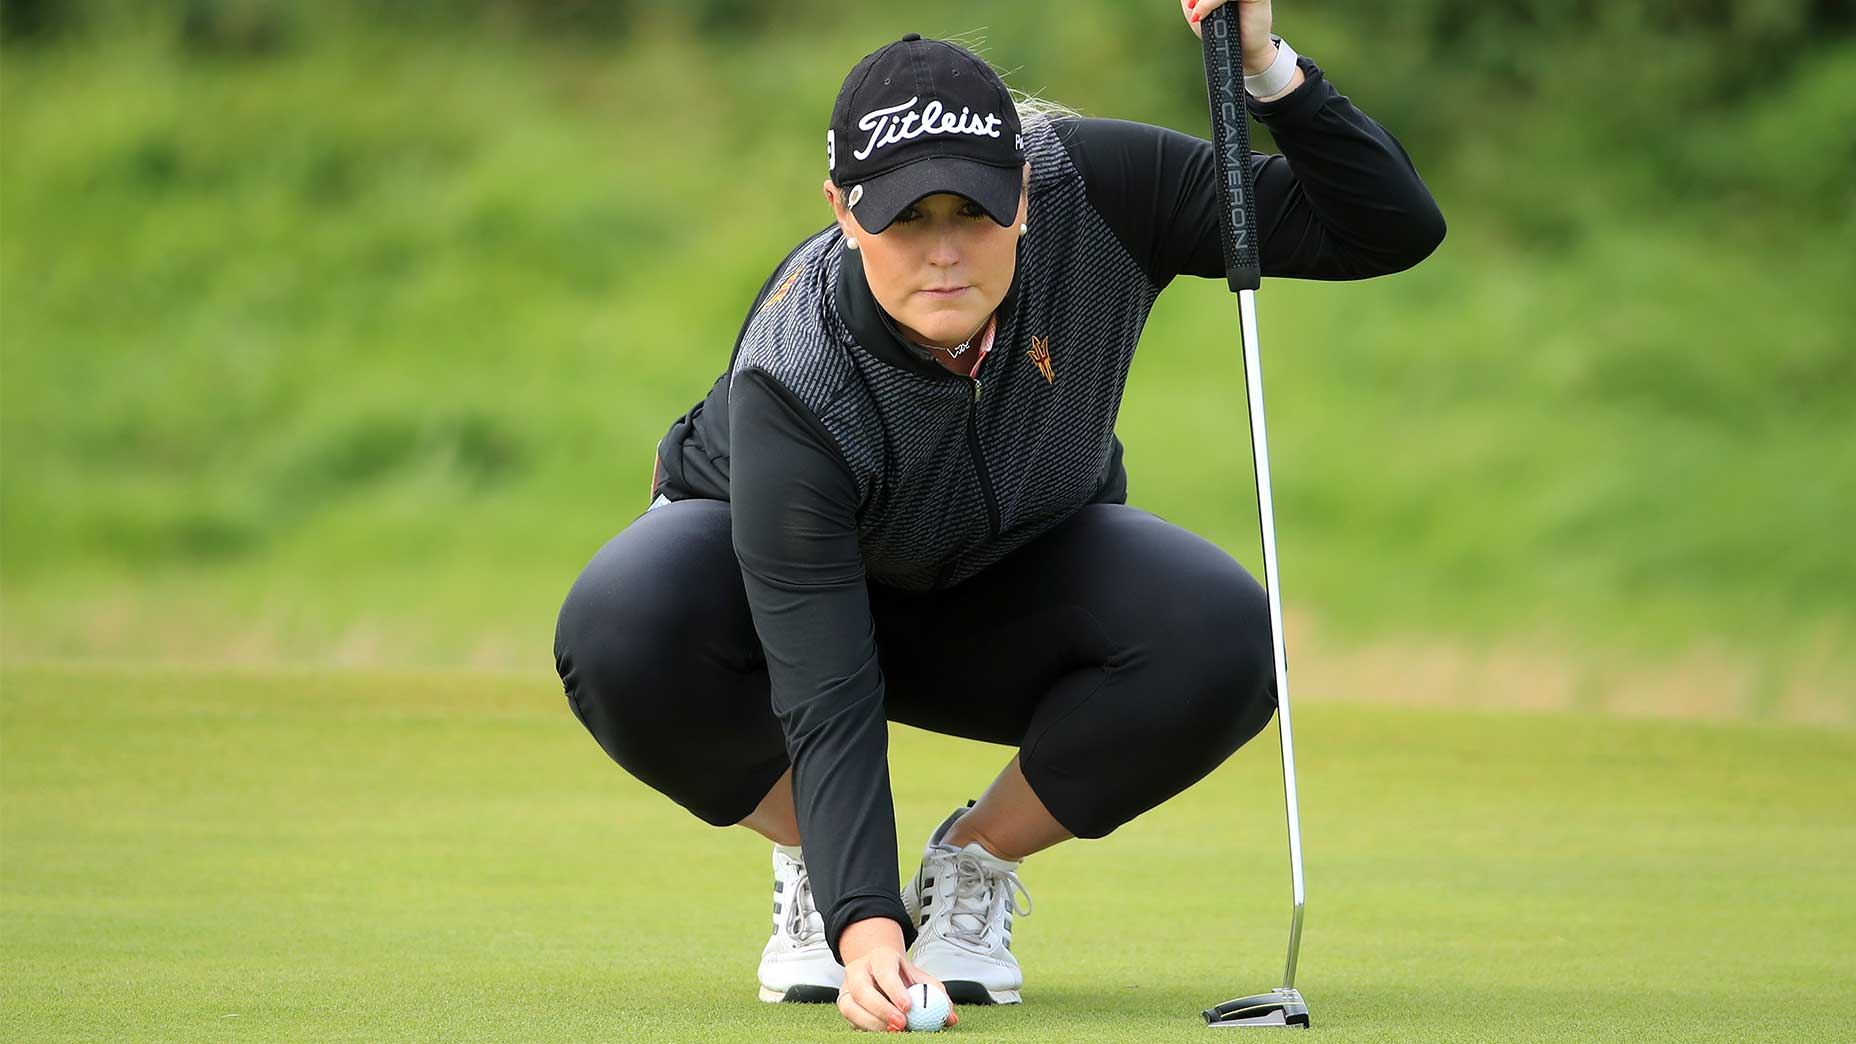 Olivia Mehaffey's swapped her Scotty Cameron Phantom 7 for a borrwed blade putter ahead of the ANWA.